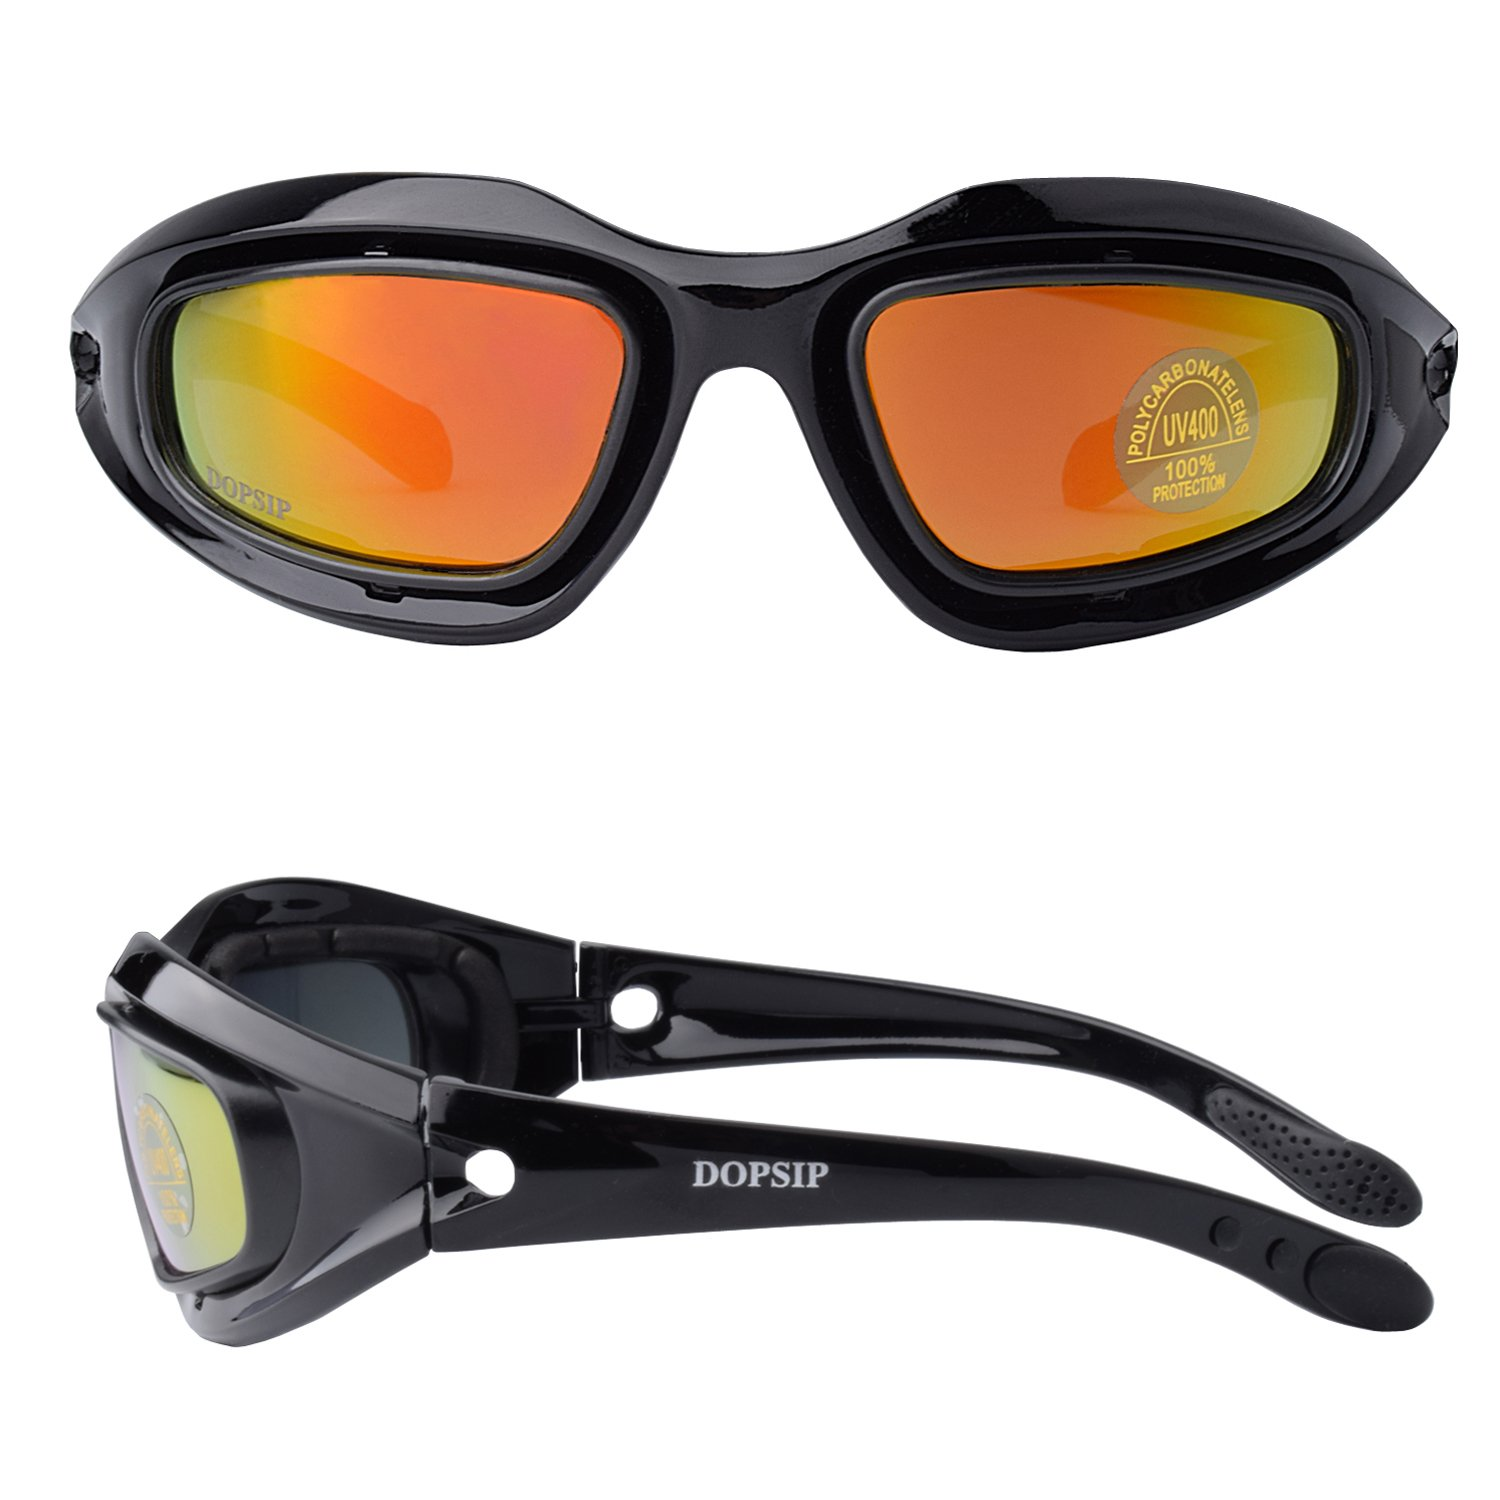 Tactical Glasses,DOPSIP Cycling Glases Protective Military Goggle with 4 Replaceable Lenses (Black) by DOPSIP (Image #2)